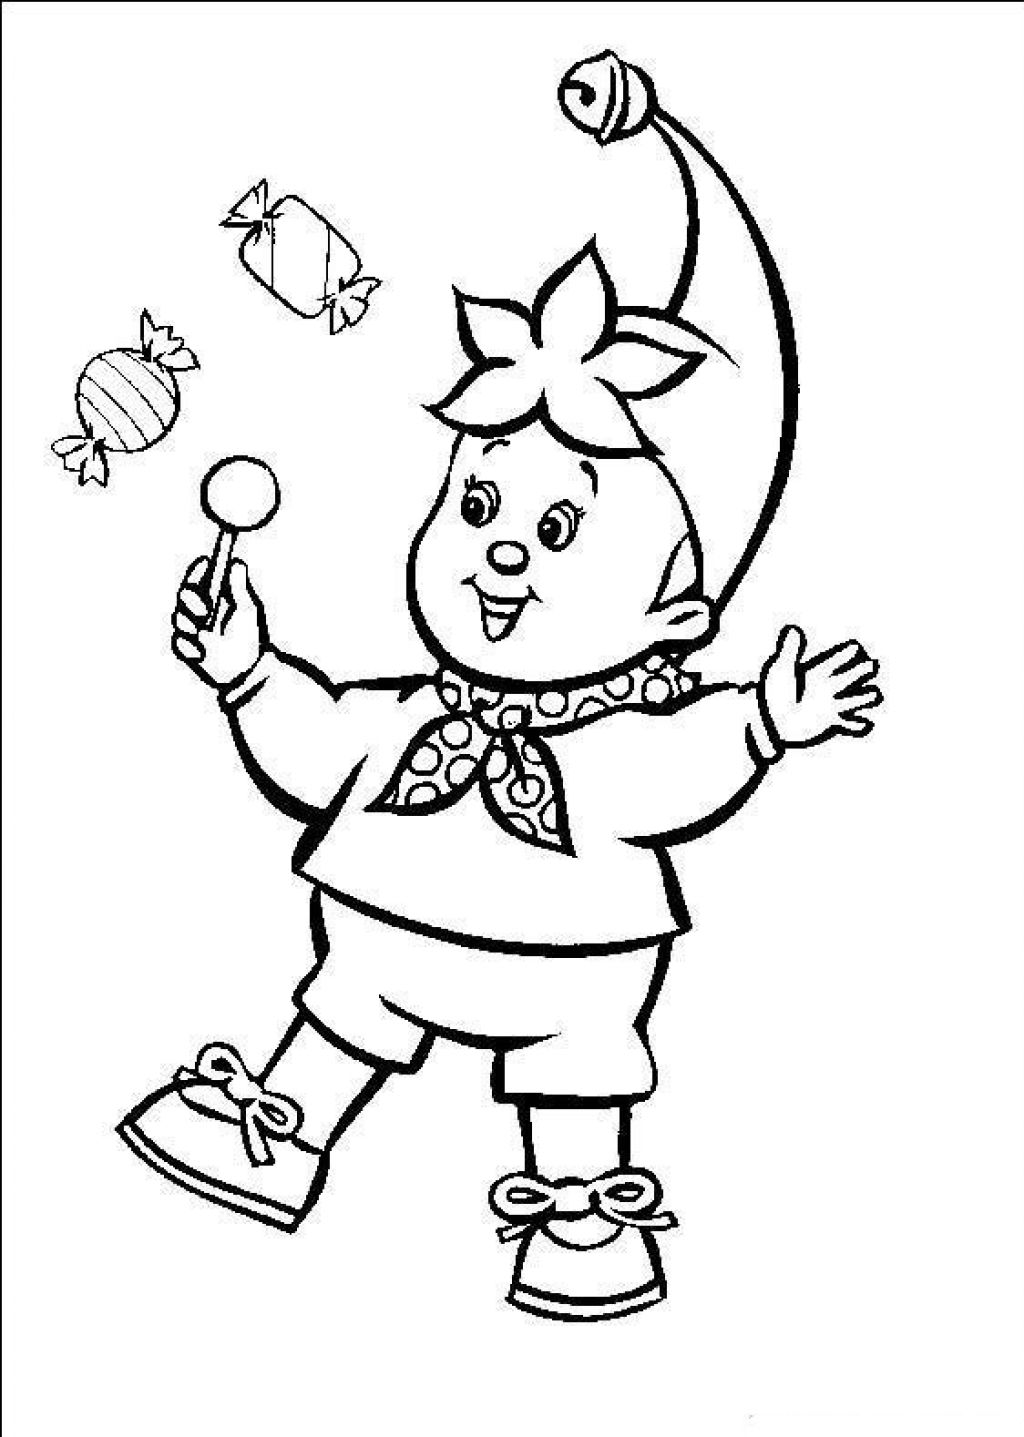 Free Printable Circus Coloring Pages For Kids